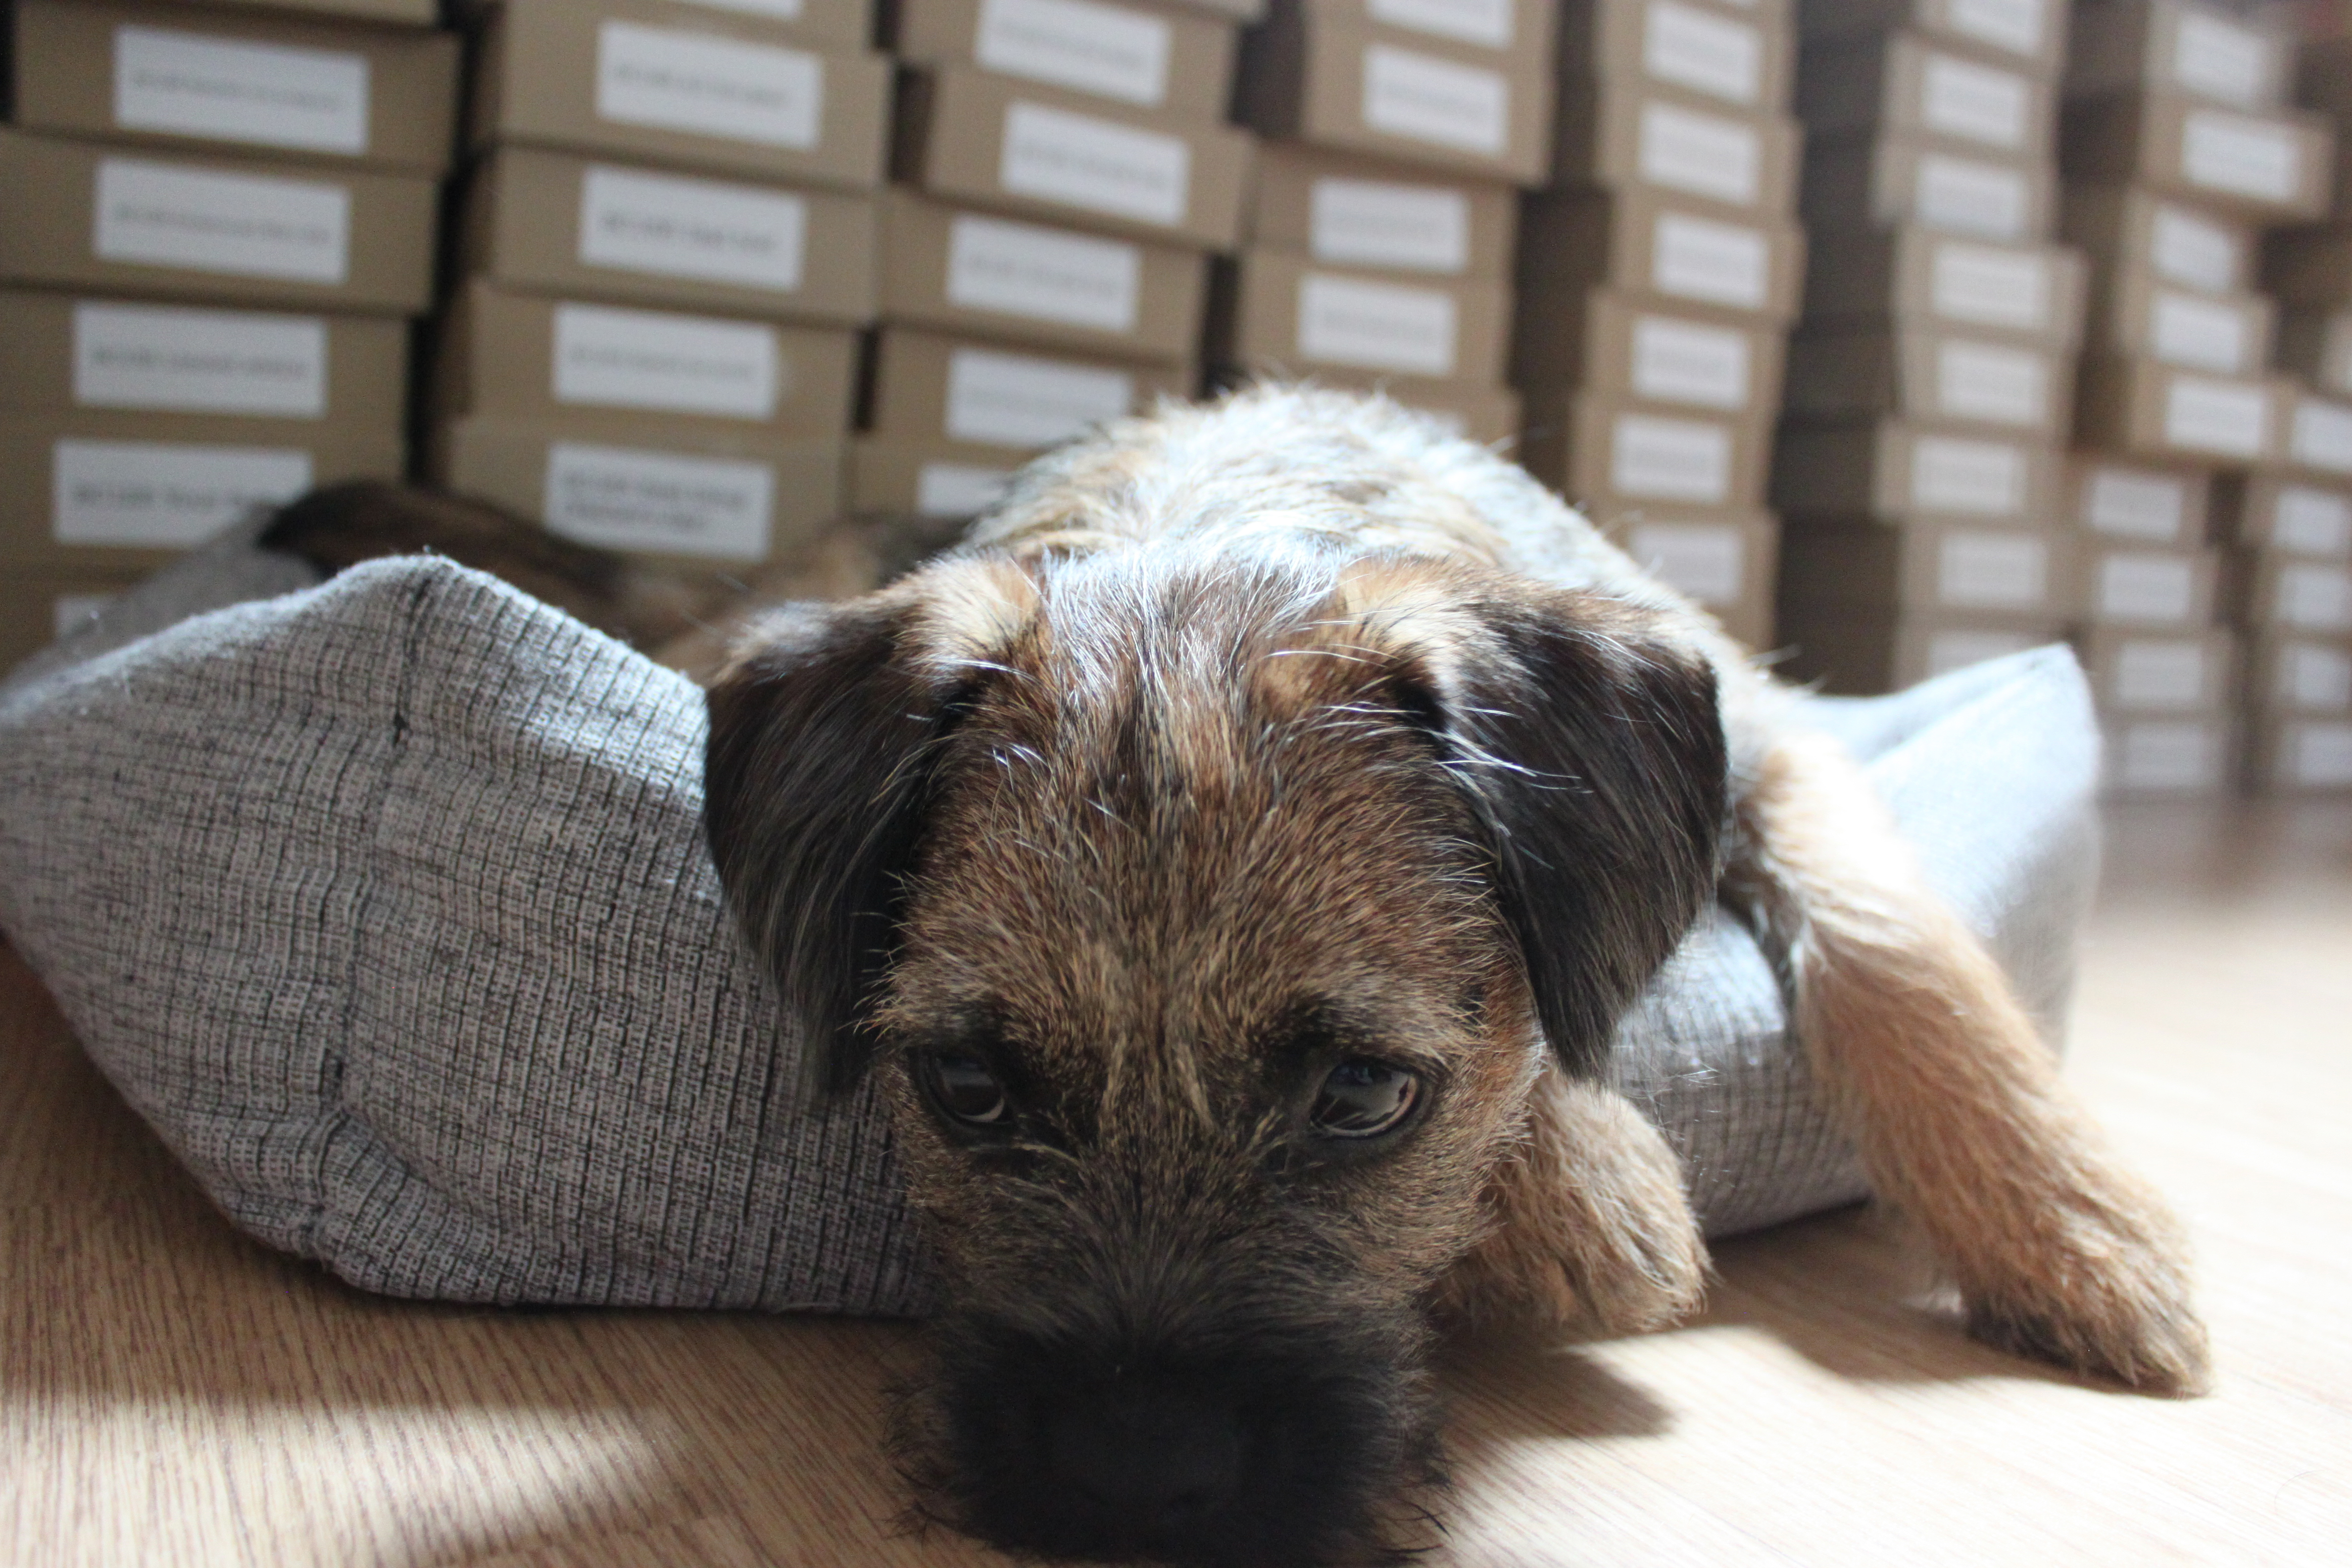 Fast forward to three years later and the only pitter patter of tiny feet in our house are those of our Border Terrier puppy Obi.